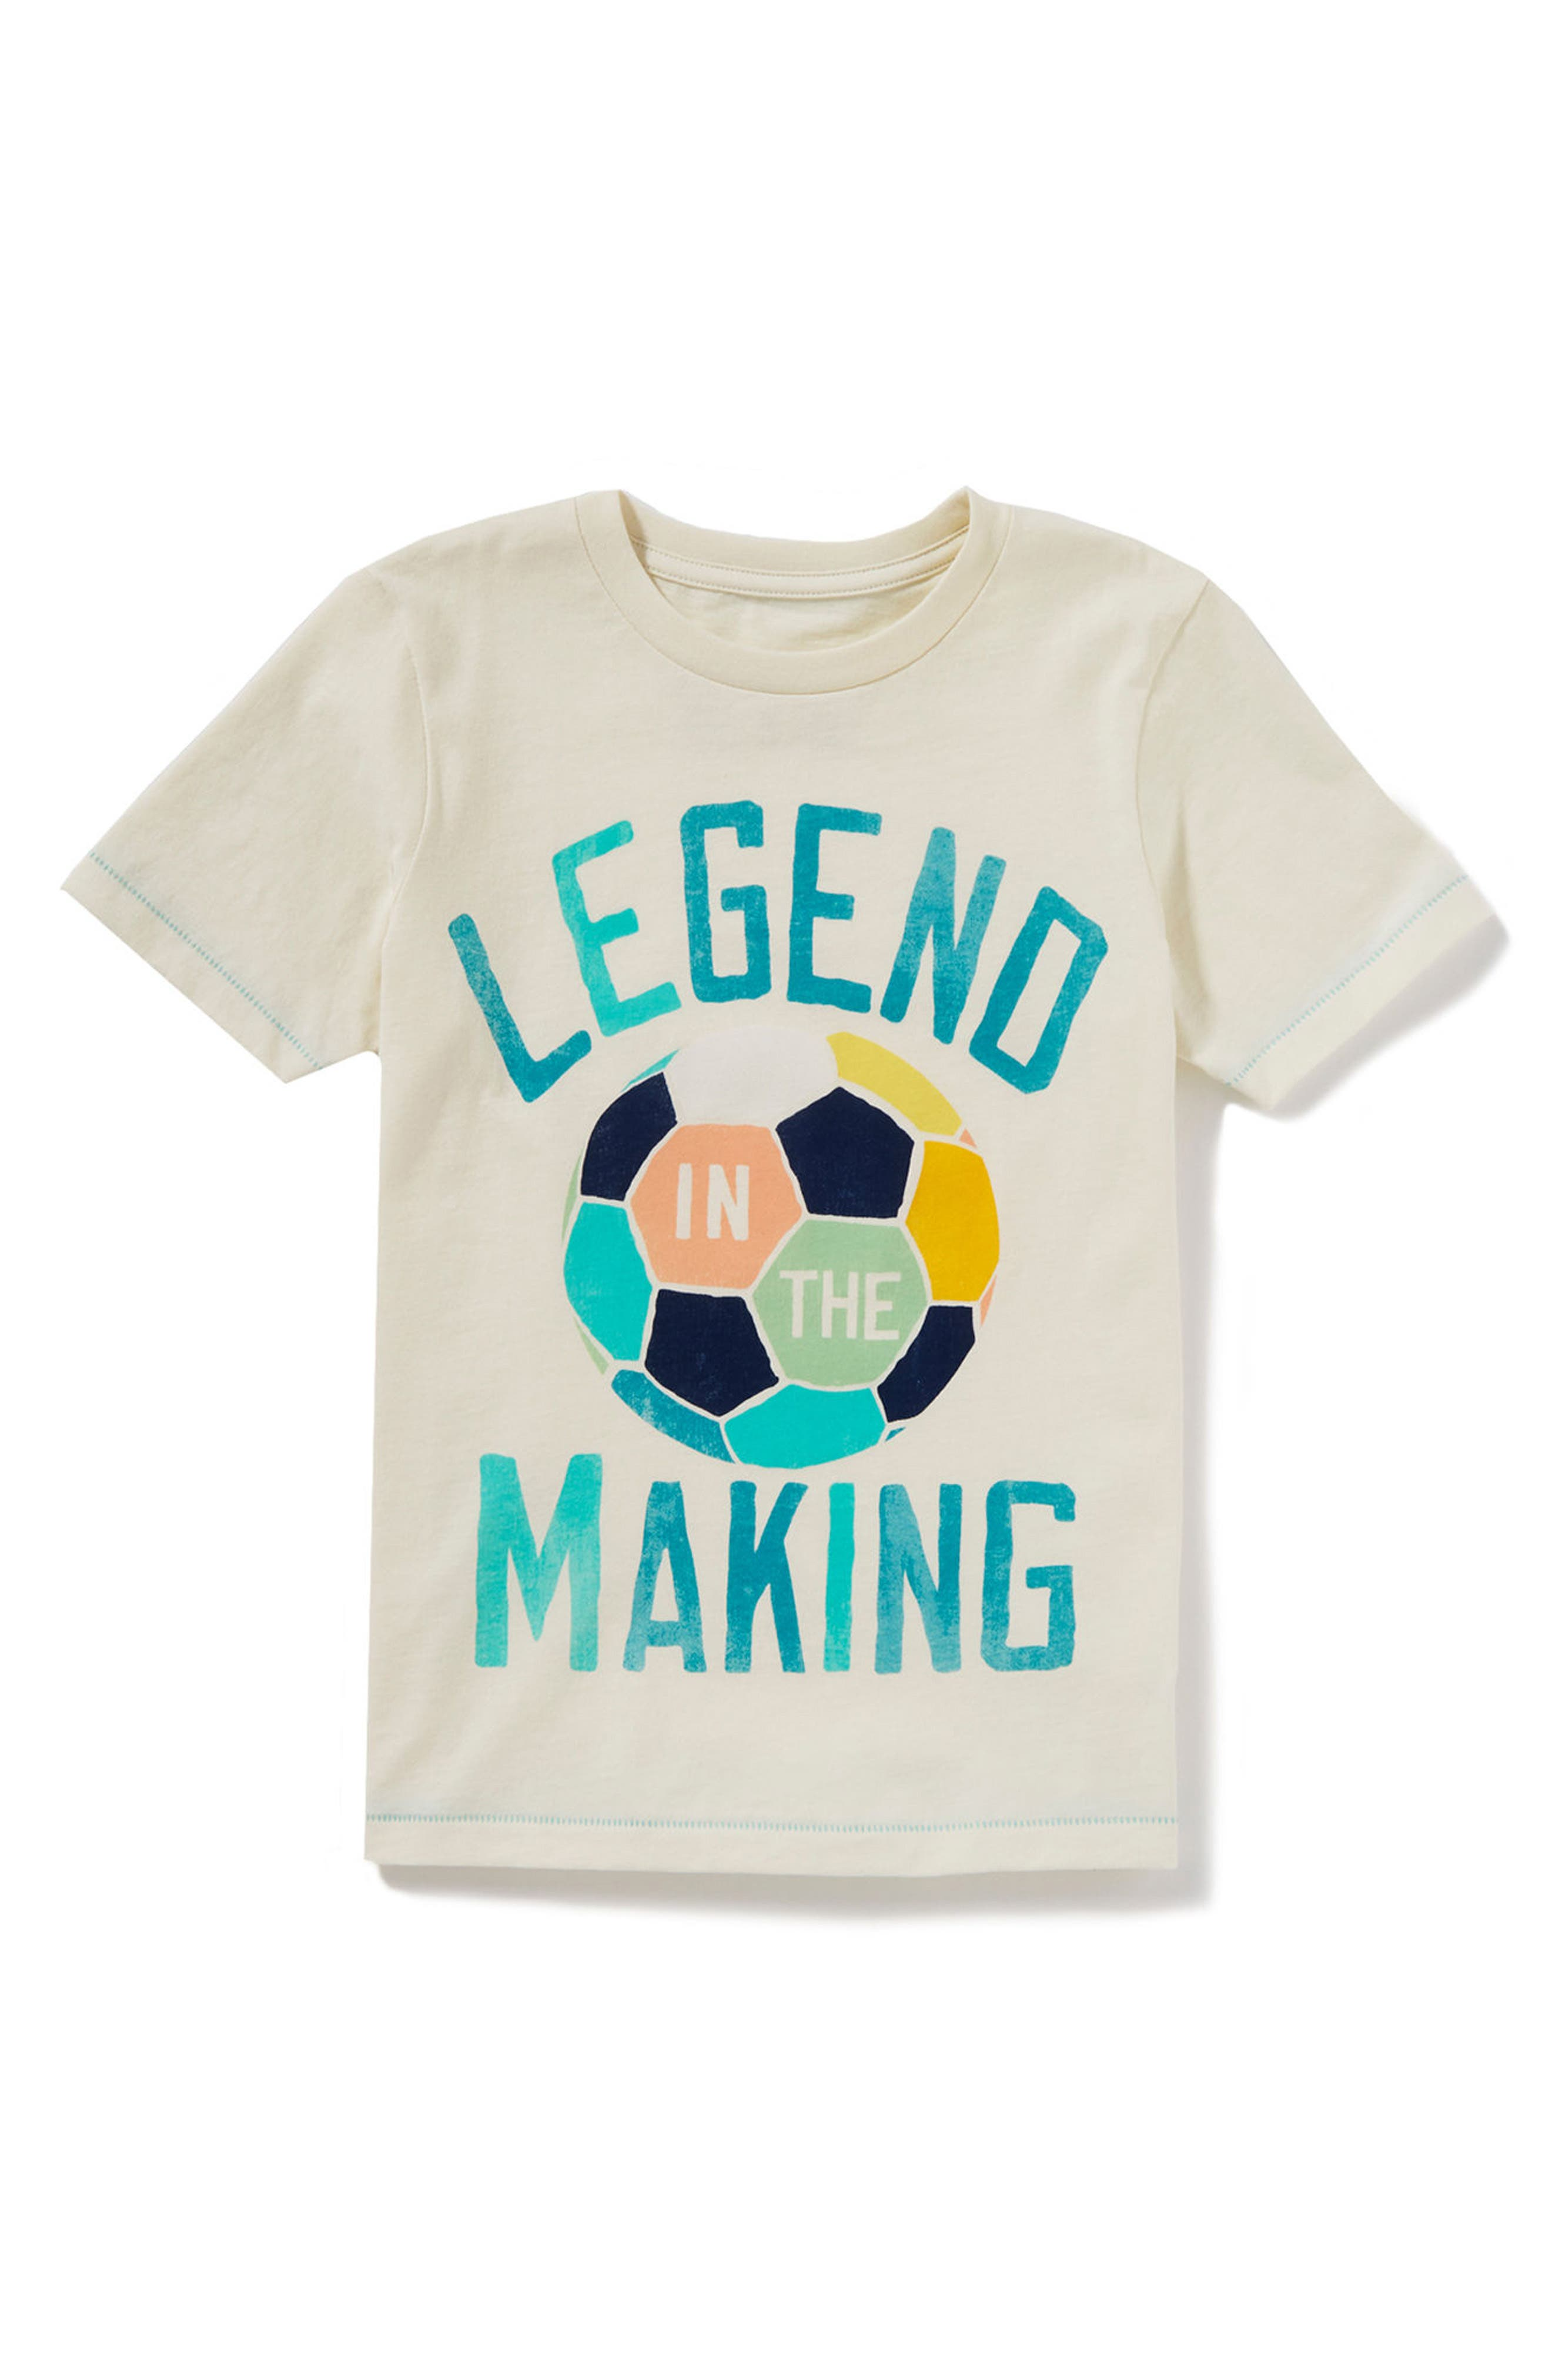 Legend in the Making Graphic T-Shirt,                             Main thumbnail 1, color,                             900